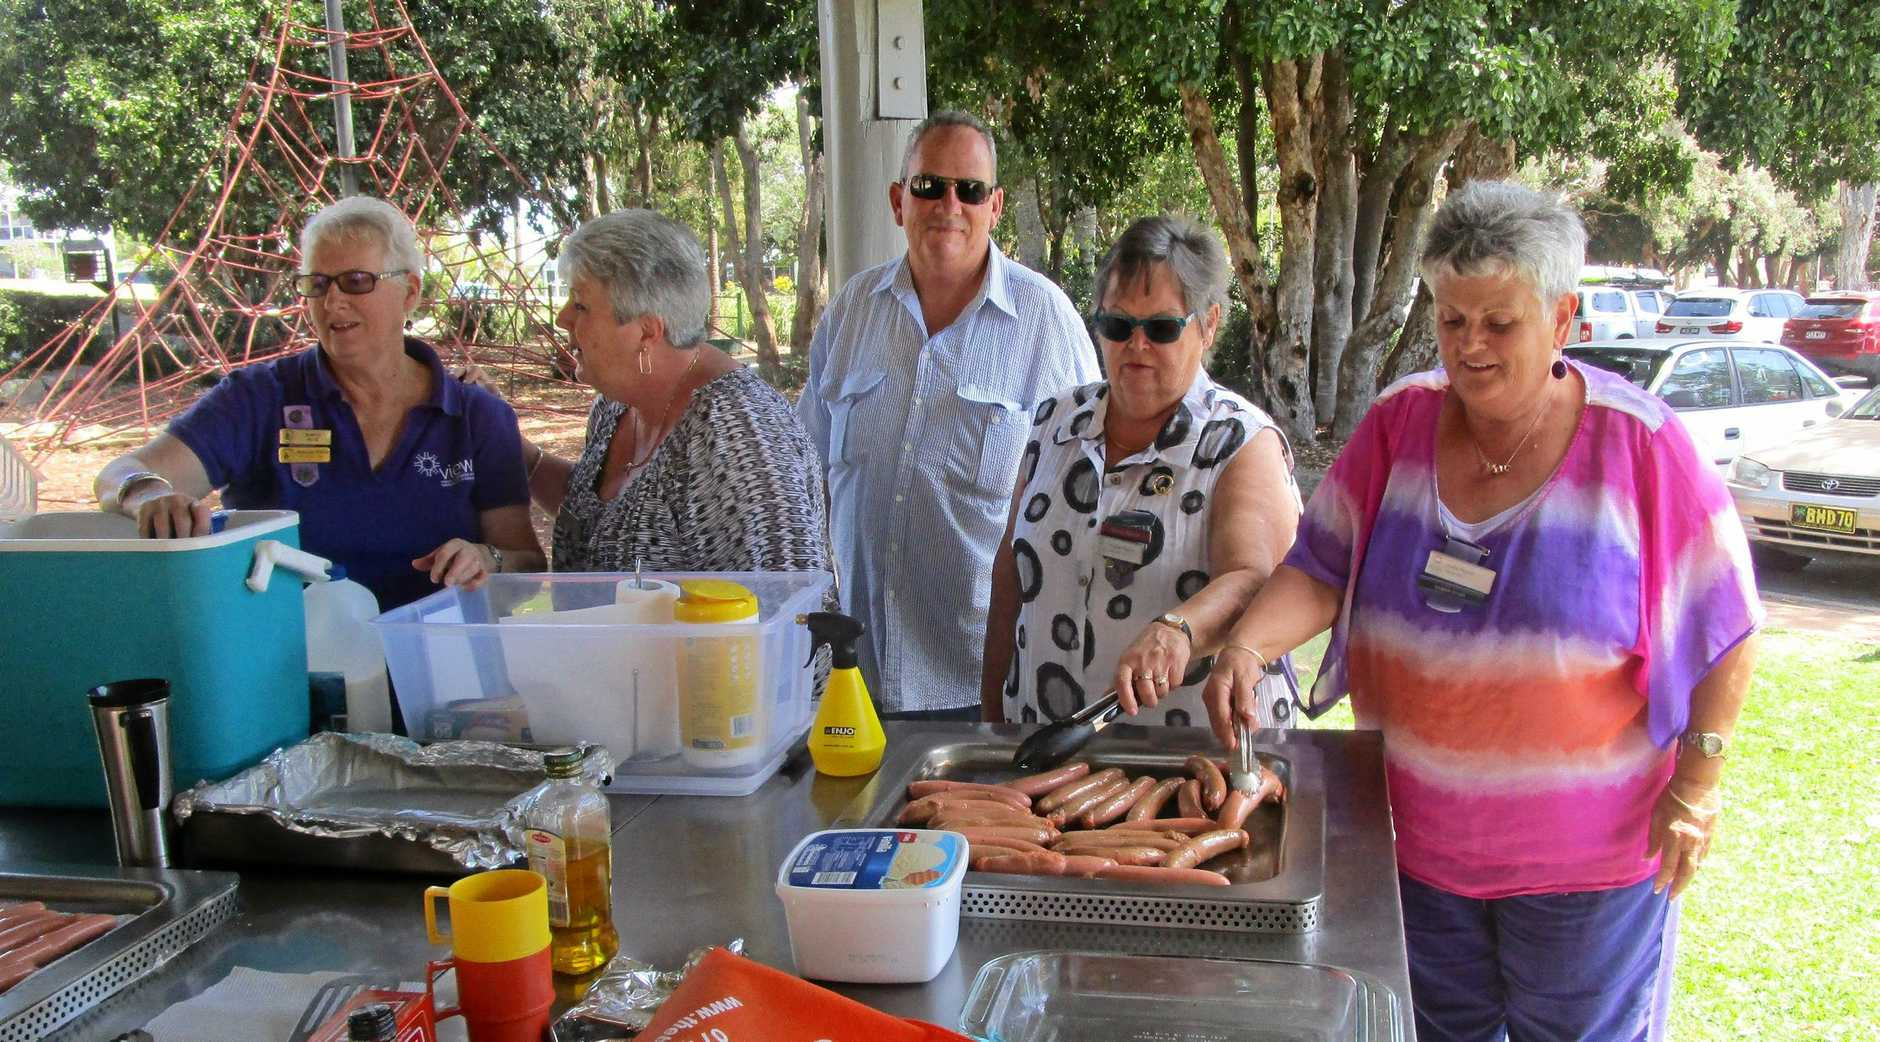 Many hands make light work as the Hervey Bay VIEW Club prepare their sausage sizzle lunch... Robyn Busk, Cathy and Jim Hall, President Heather Ramm, Celie Peach.